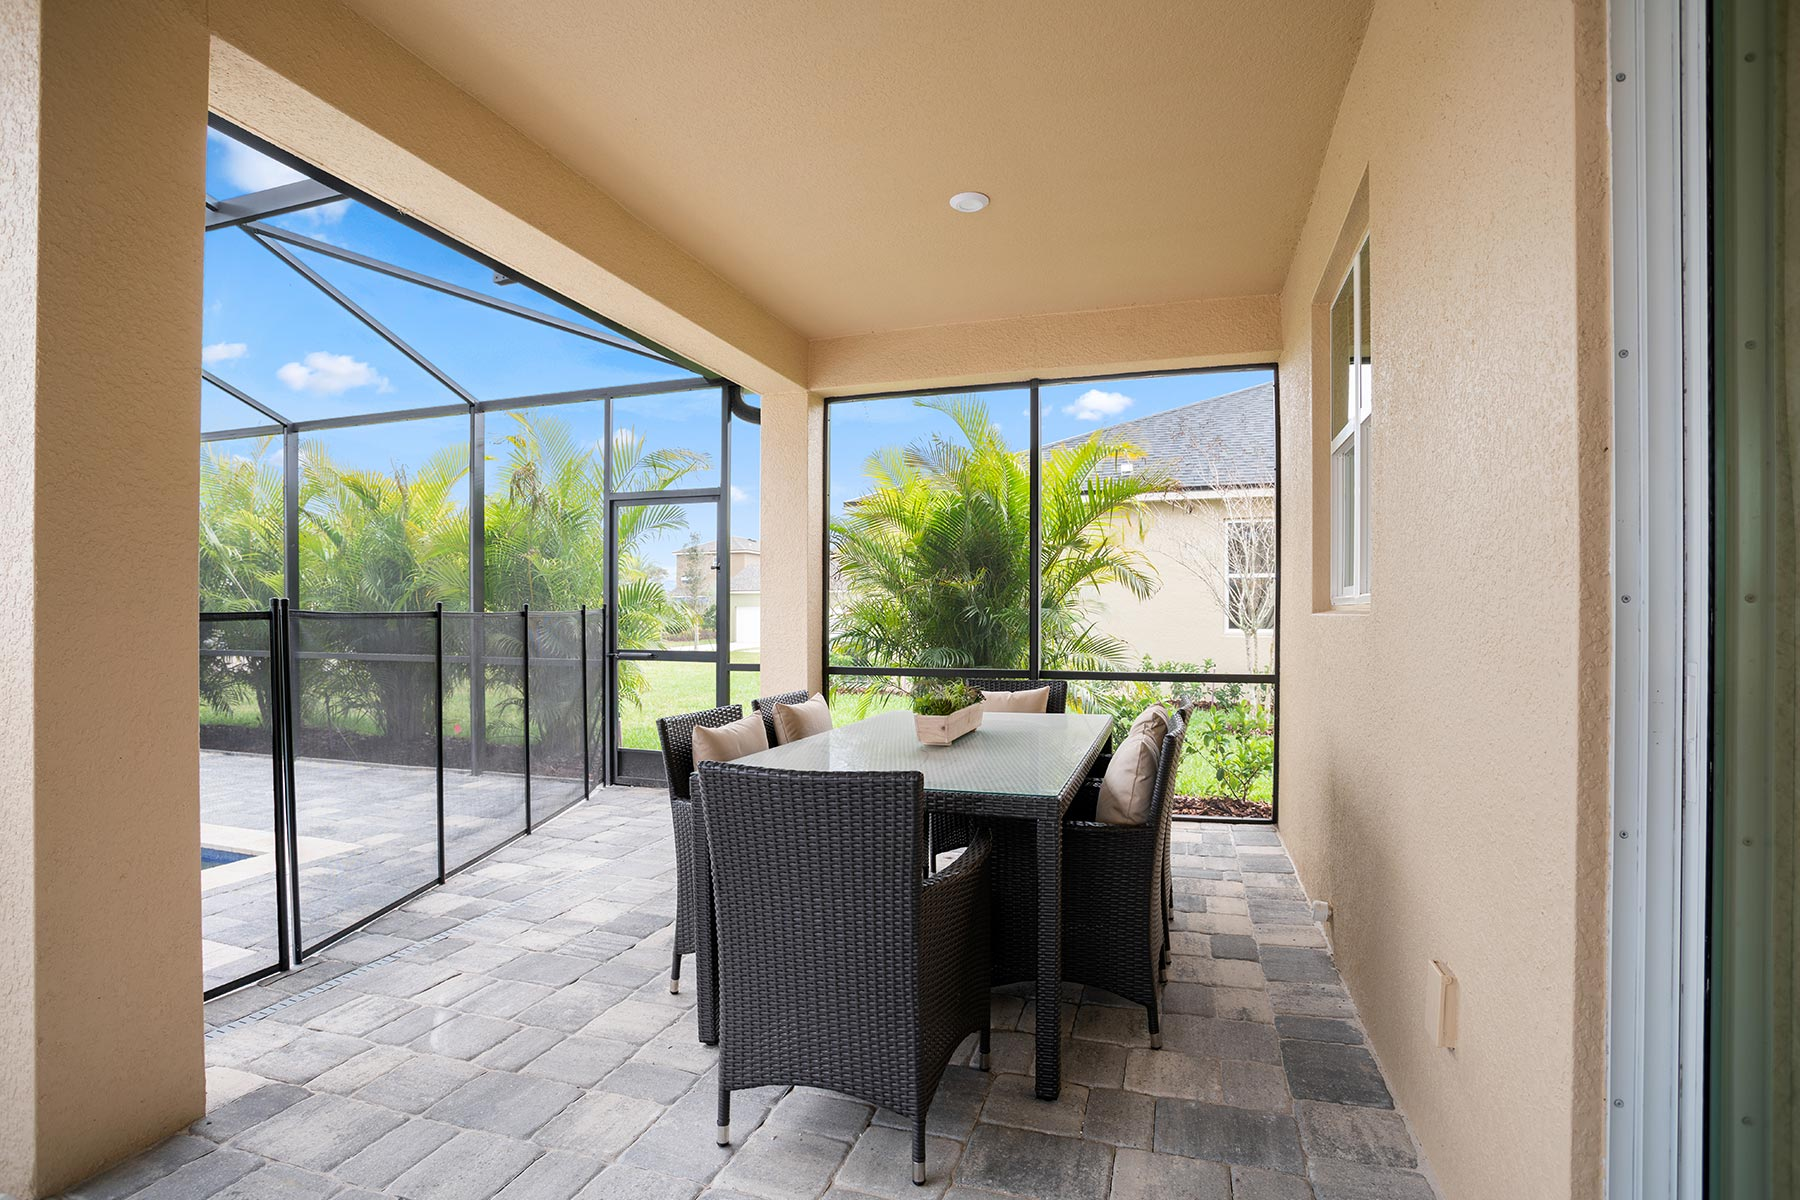 Winthrop Plan Patio at Tapestry in Kissimmee Florida by Mattamy Homes